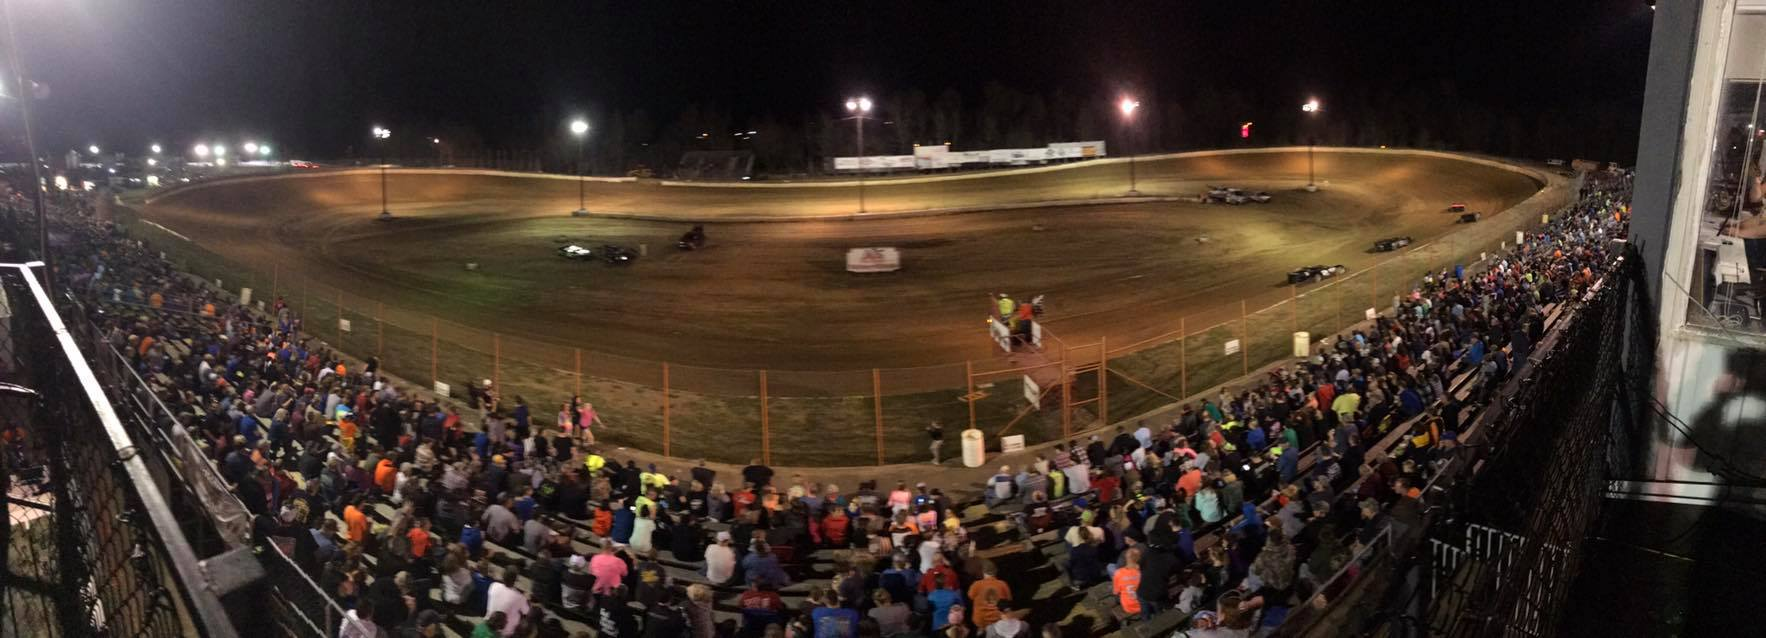 Paducah International Raceway - Grandstands April 13